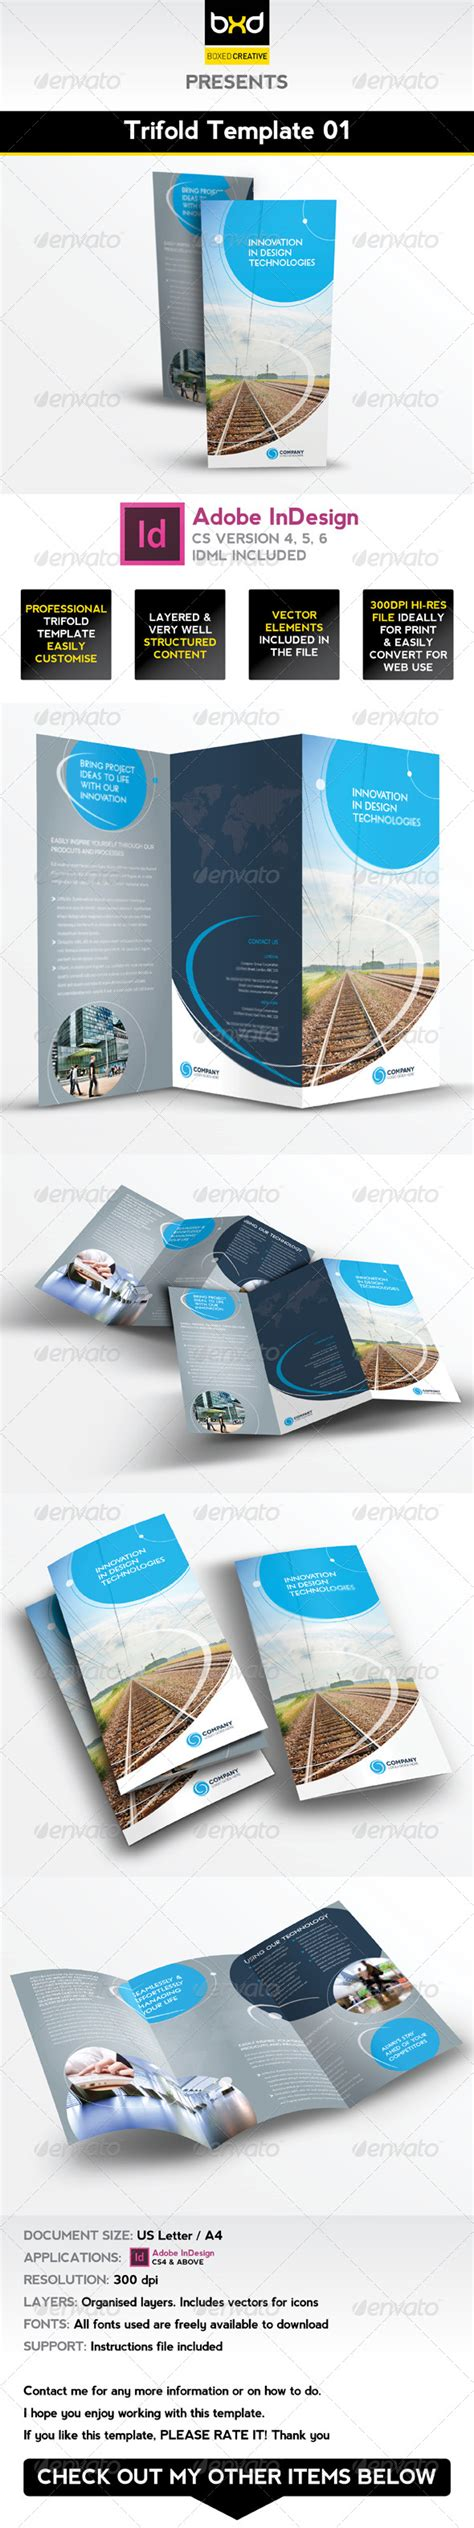 Trifold Brochure Template 01 Indesign Layout By Boxedcreative Graphicriver Indesign Trifold Template